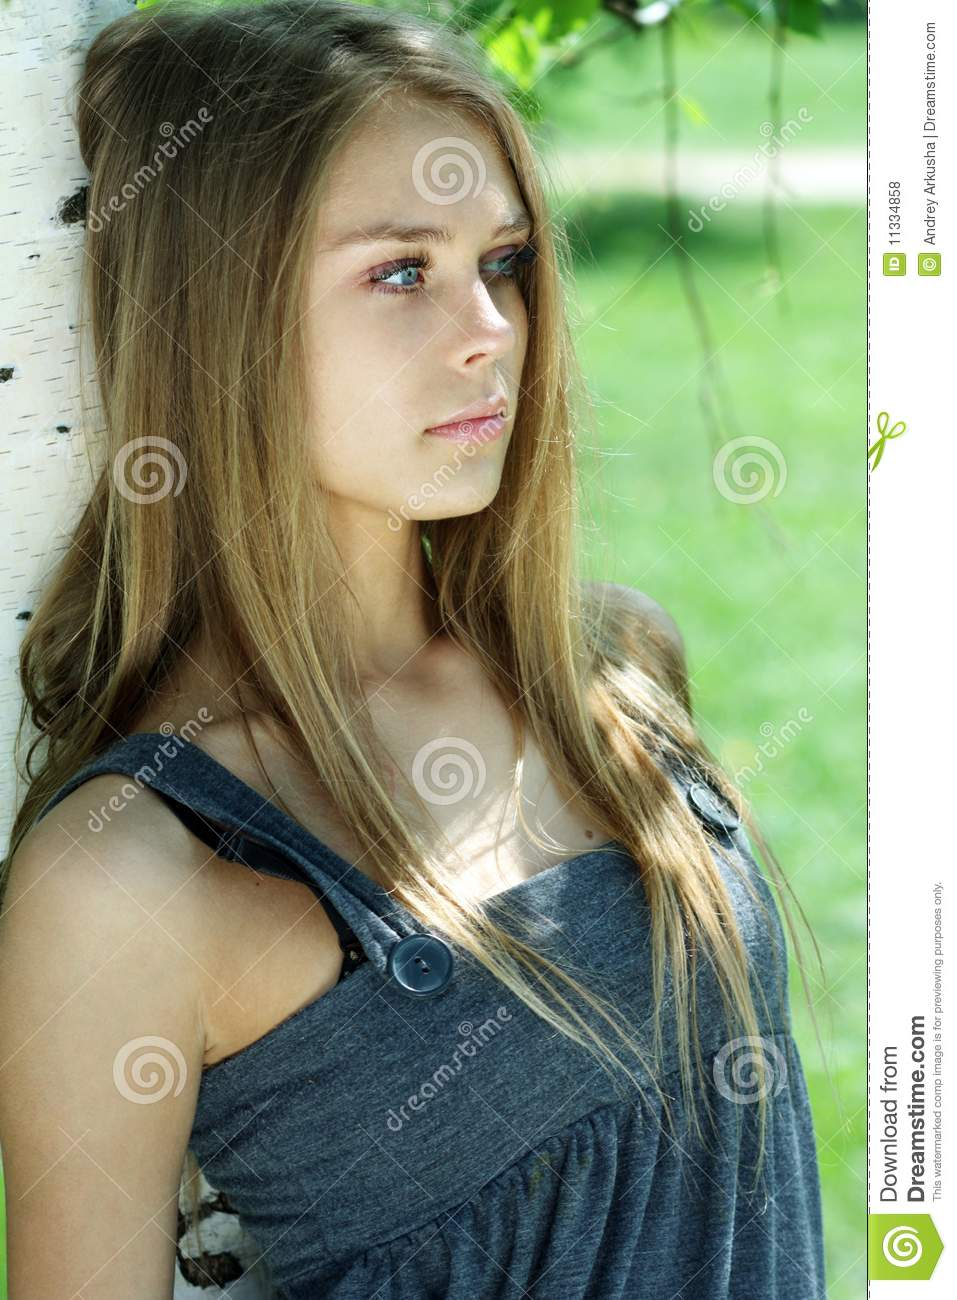 Beautiful Teen Girl: Russian Beauty Stock Photo. Image Of Europen, Nature